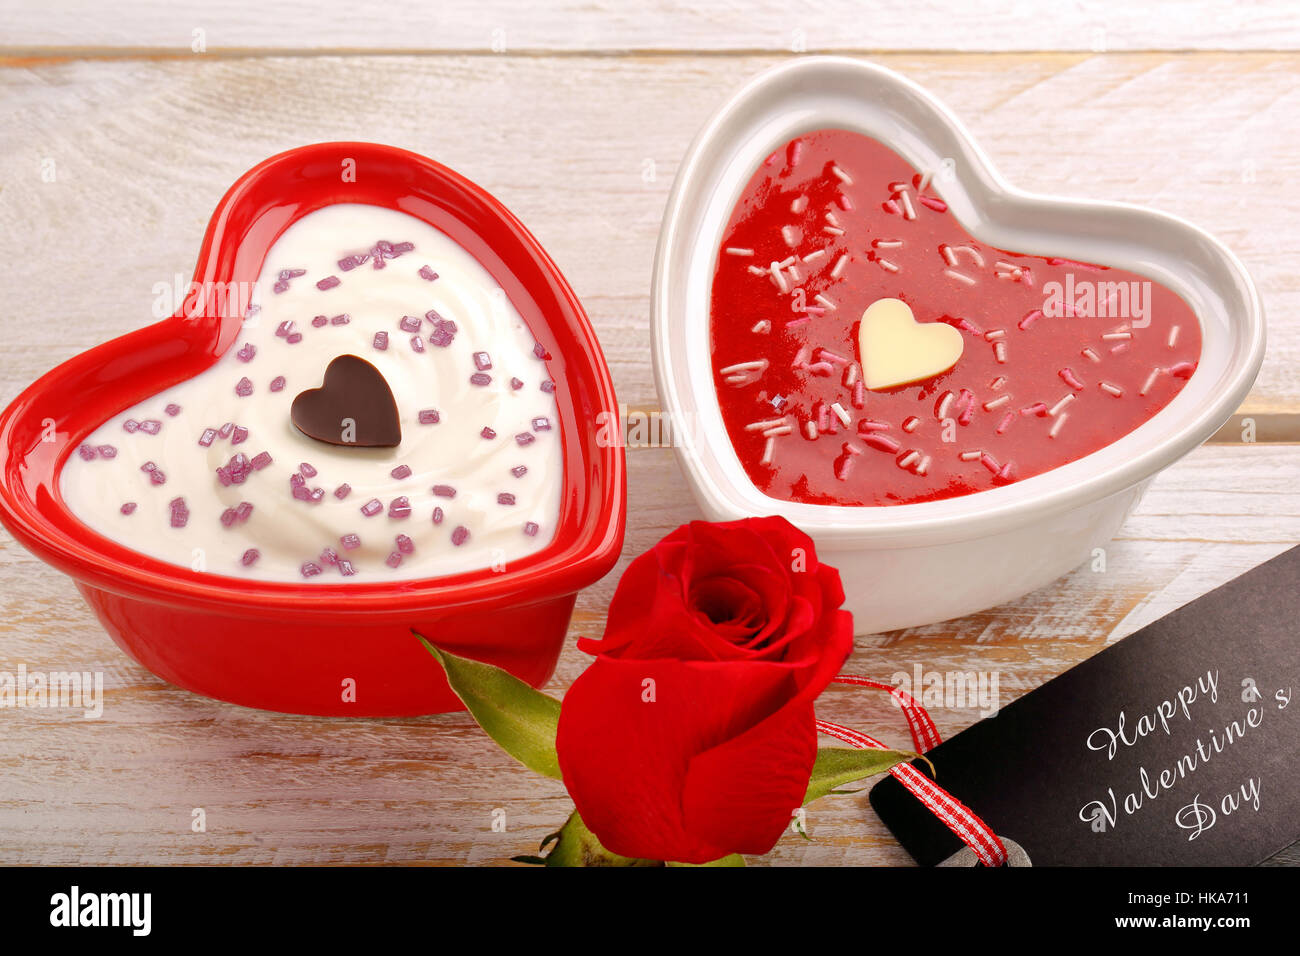 Sweet dessert for Valentines Day with card for text on wooden background - Stock Image